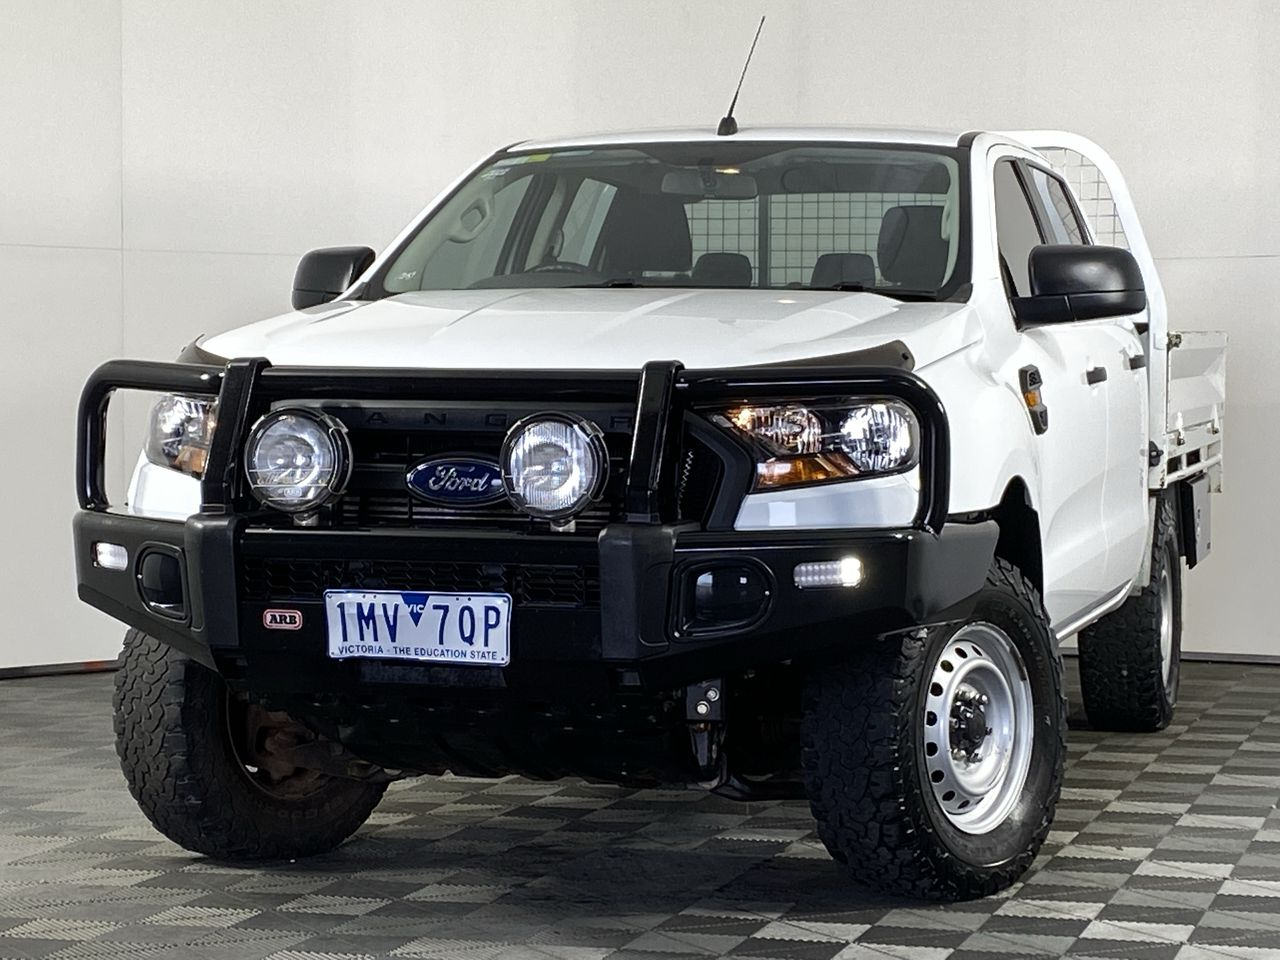 2018 Ford Ranger XL 4X4 PX II Turbo Diesel Automatic Crew Cab Chassis